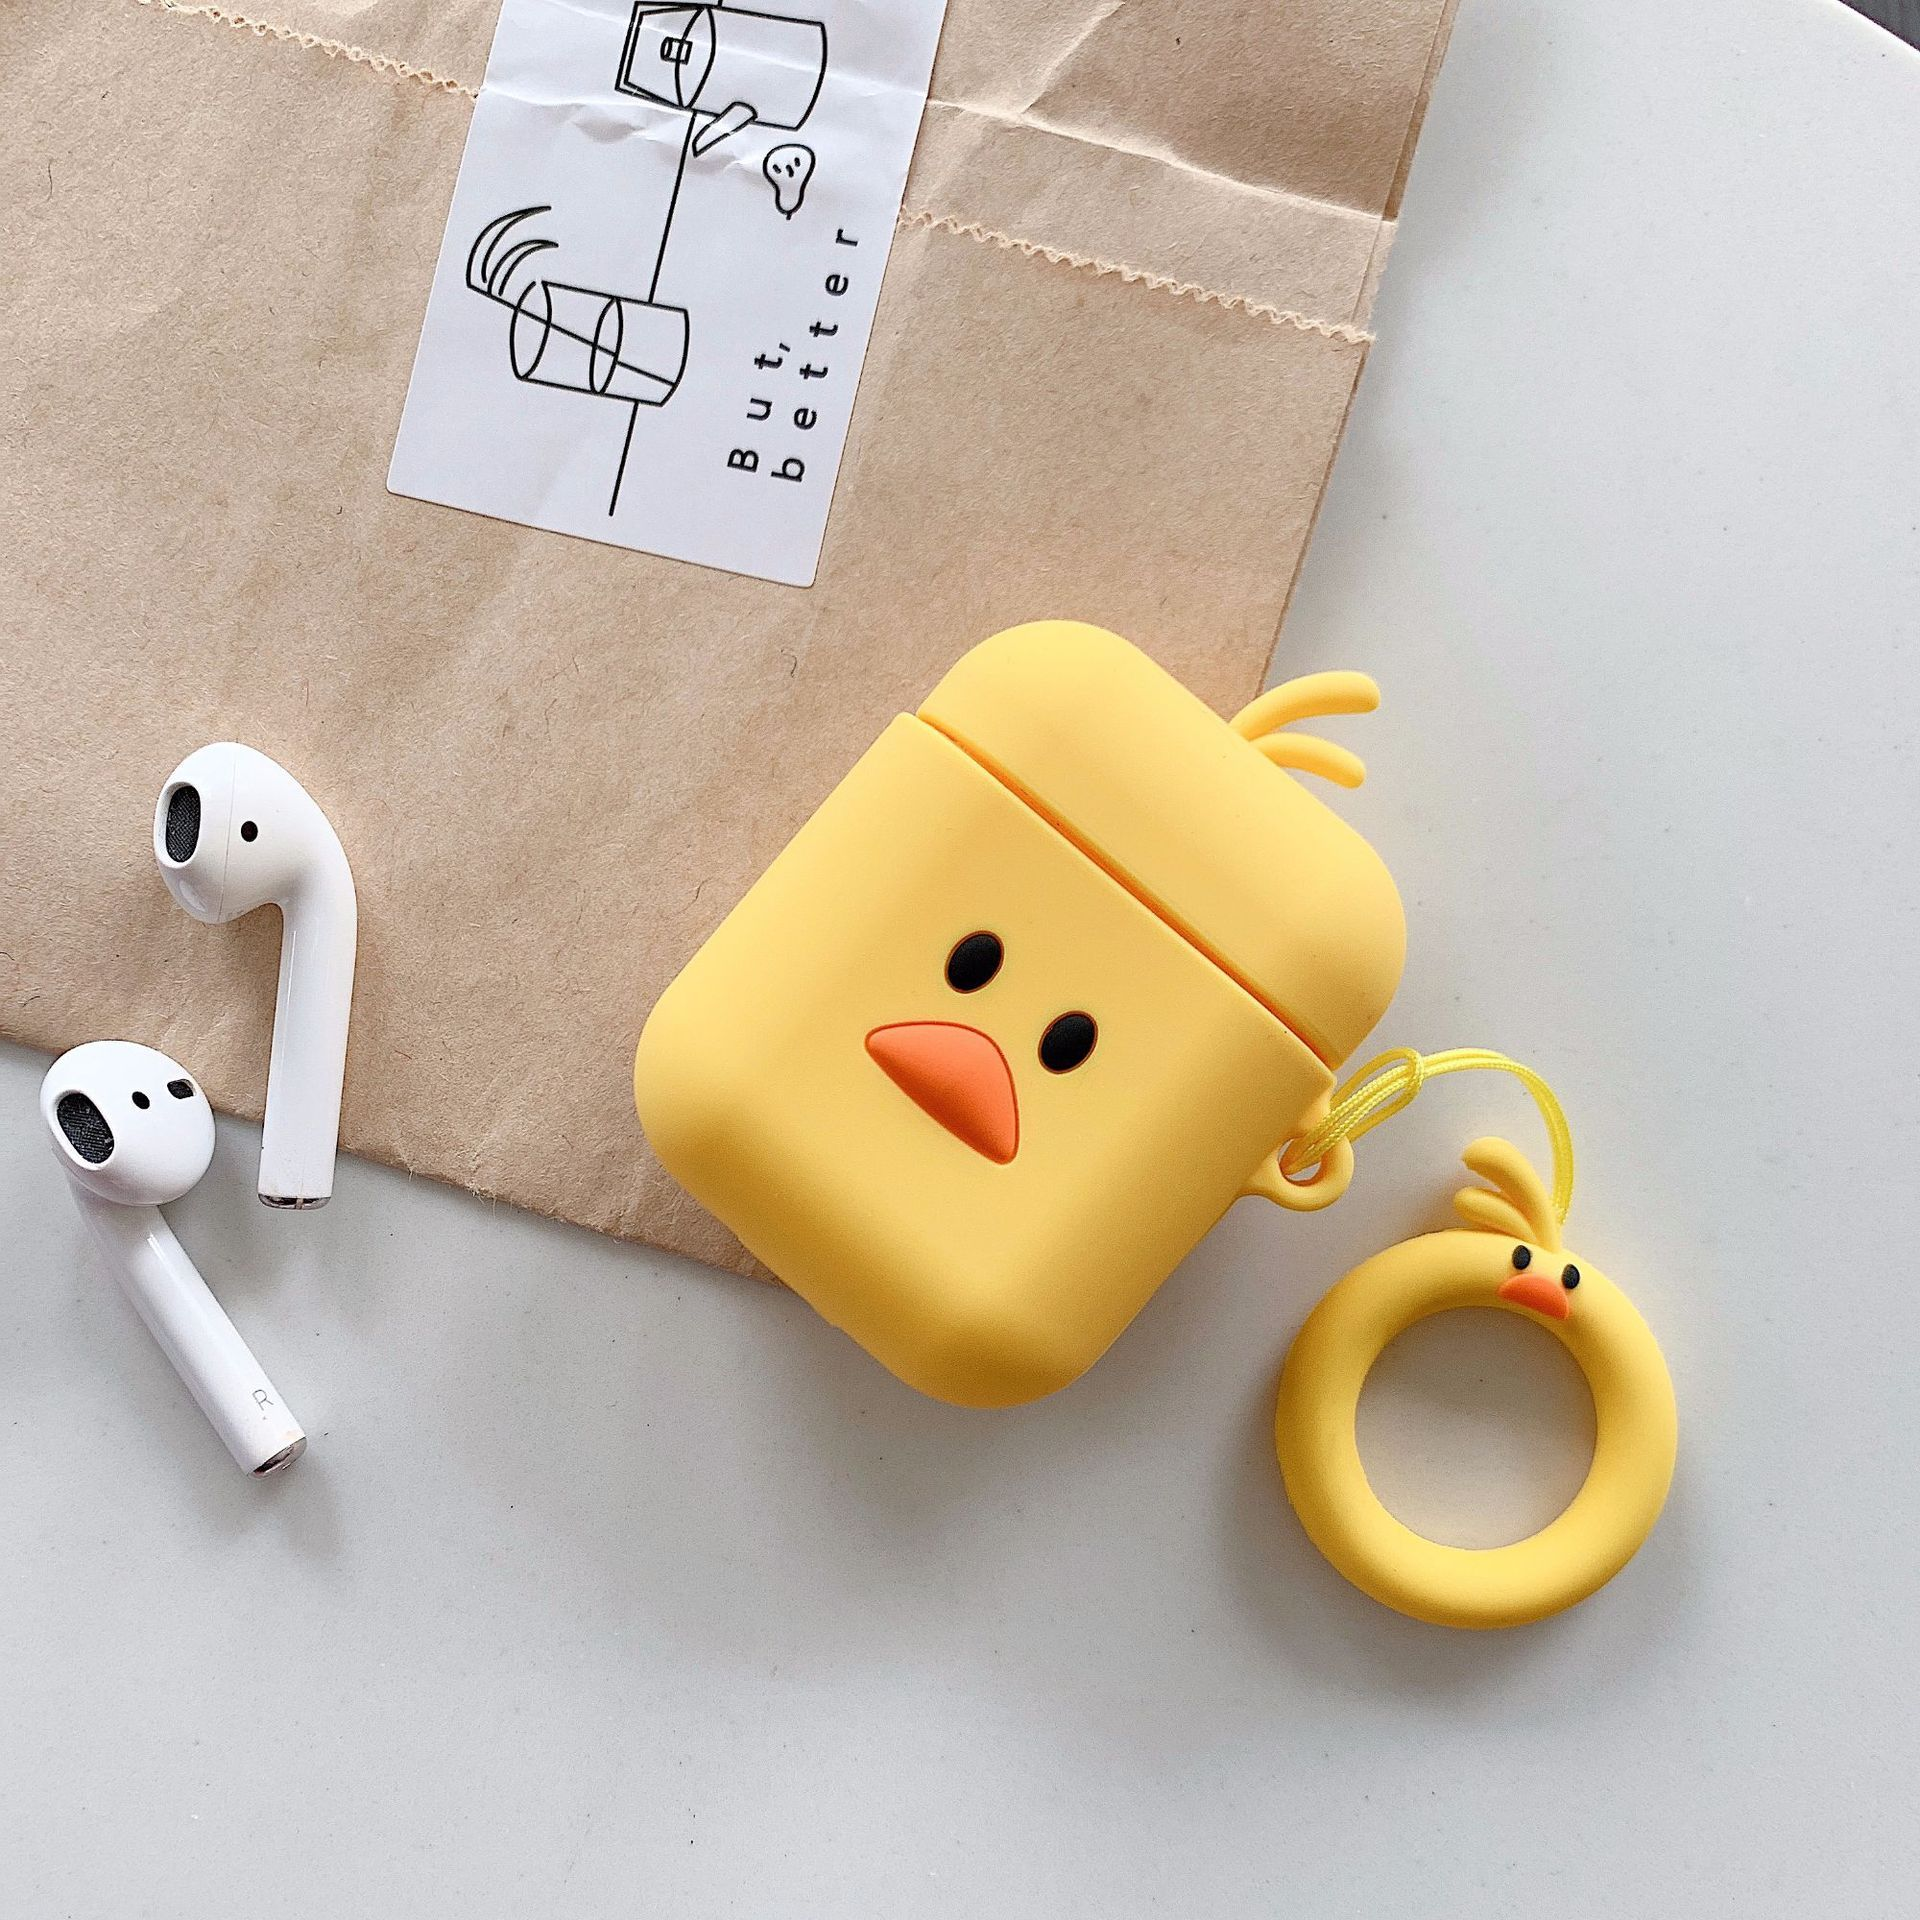 Cartoon Character AirPods Case